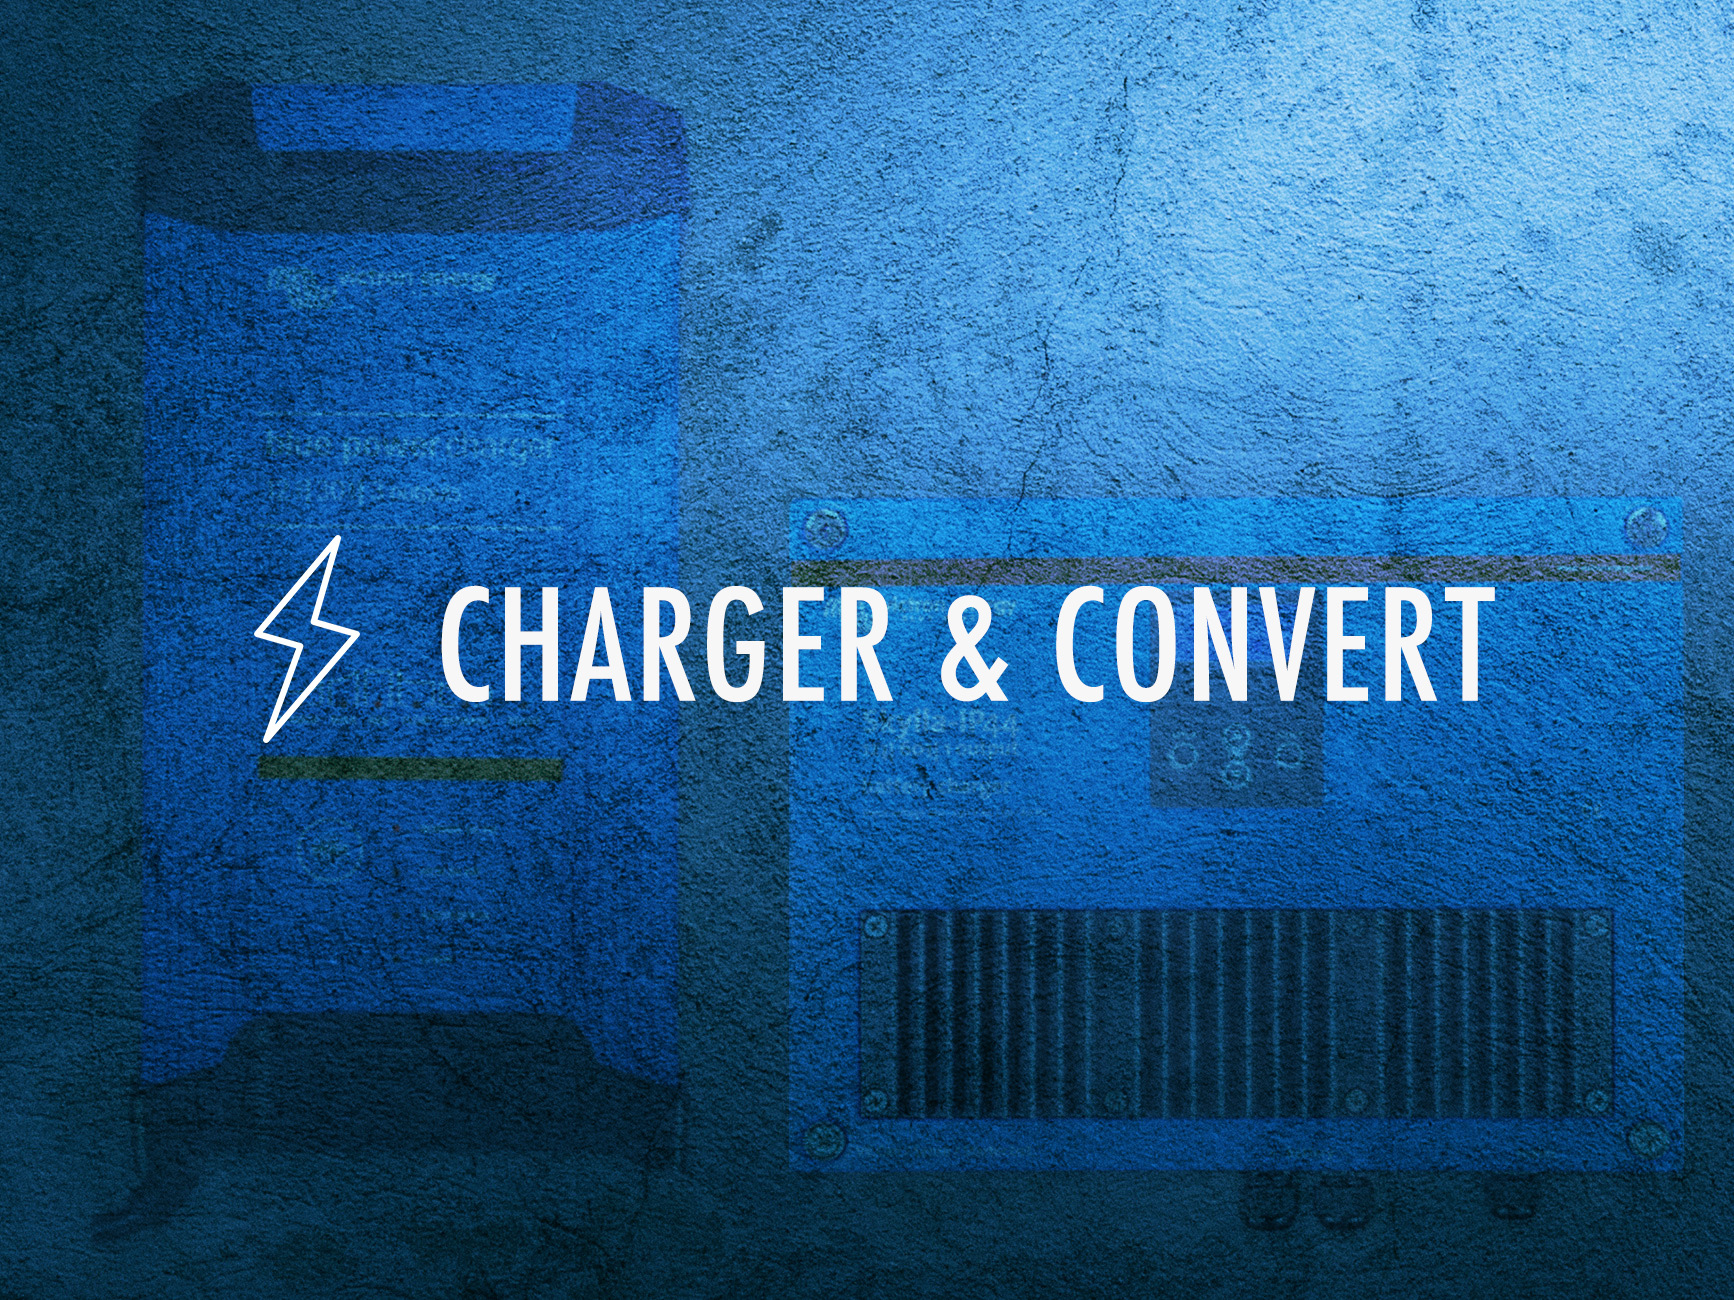 Charge & Convert